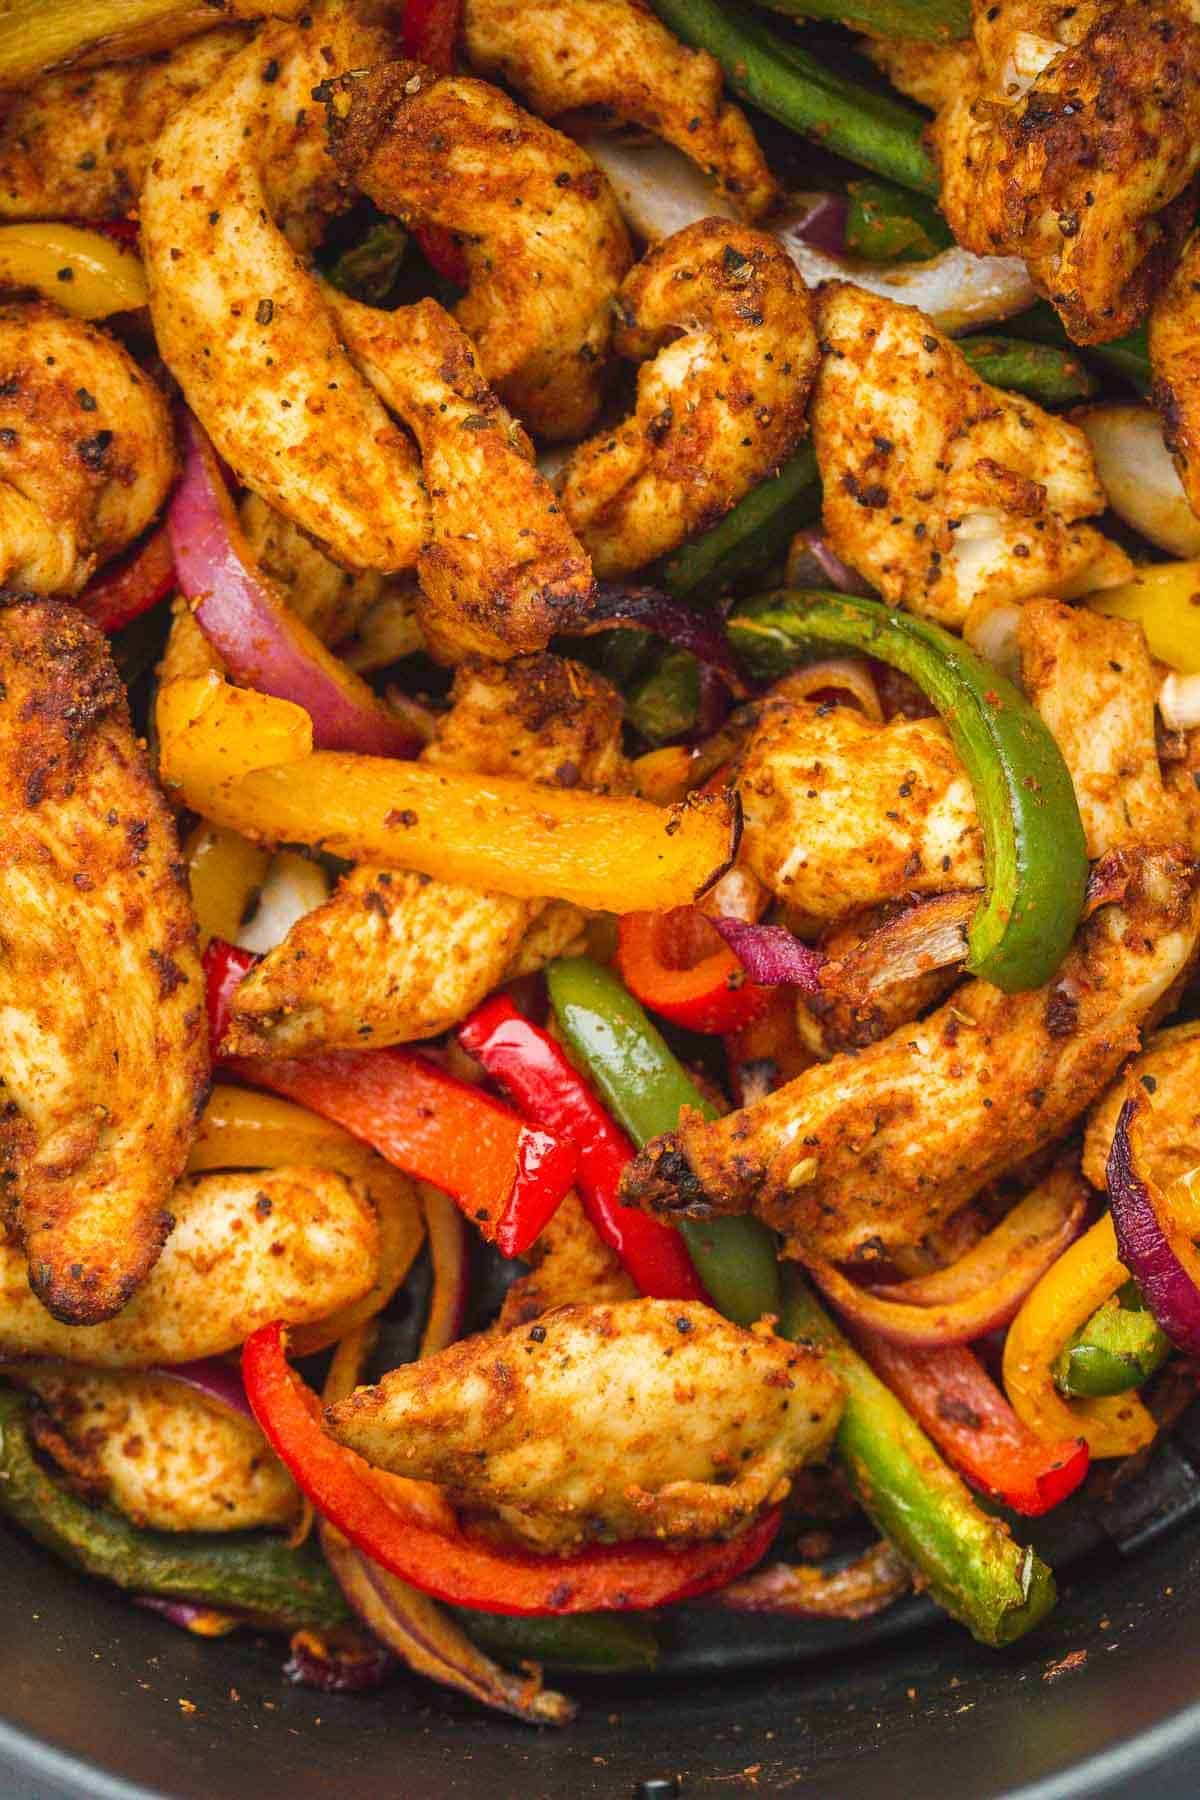 A close up shot of chicken fajitas.